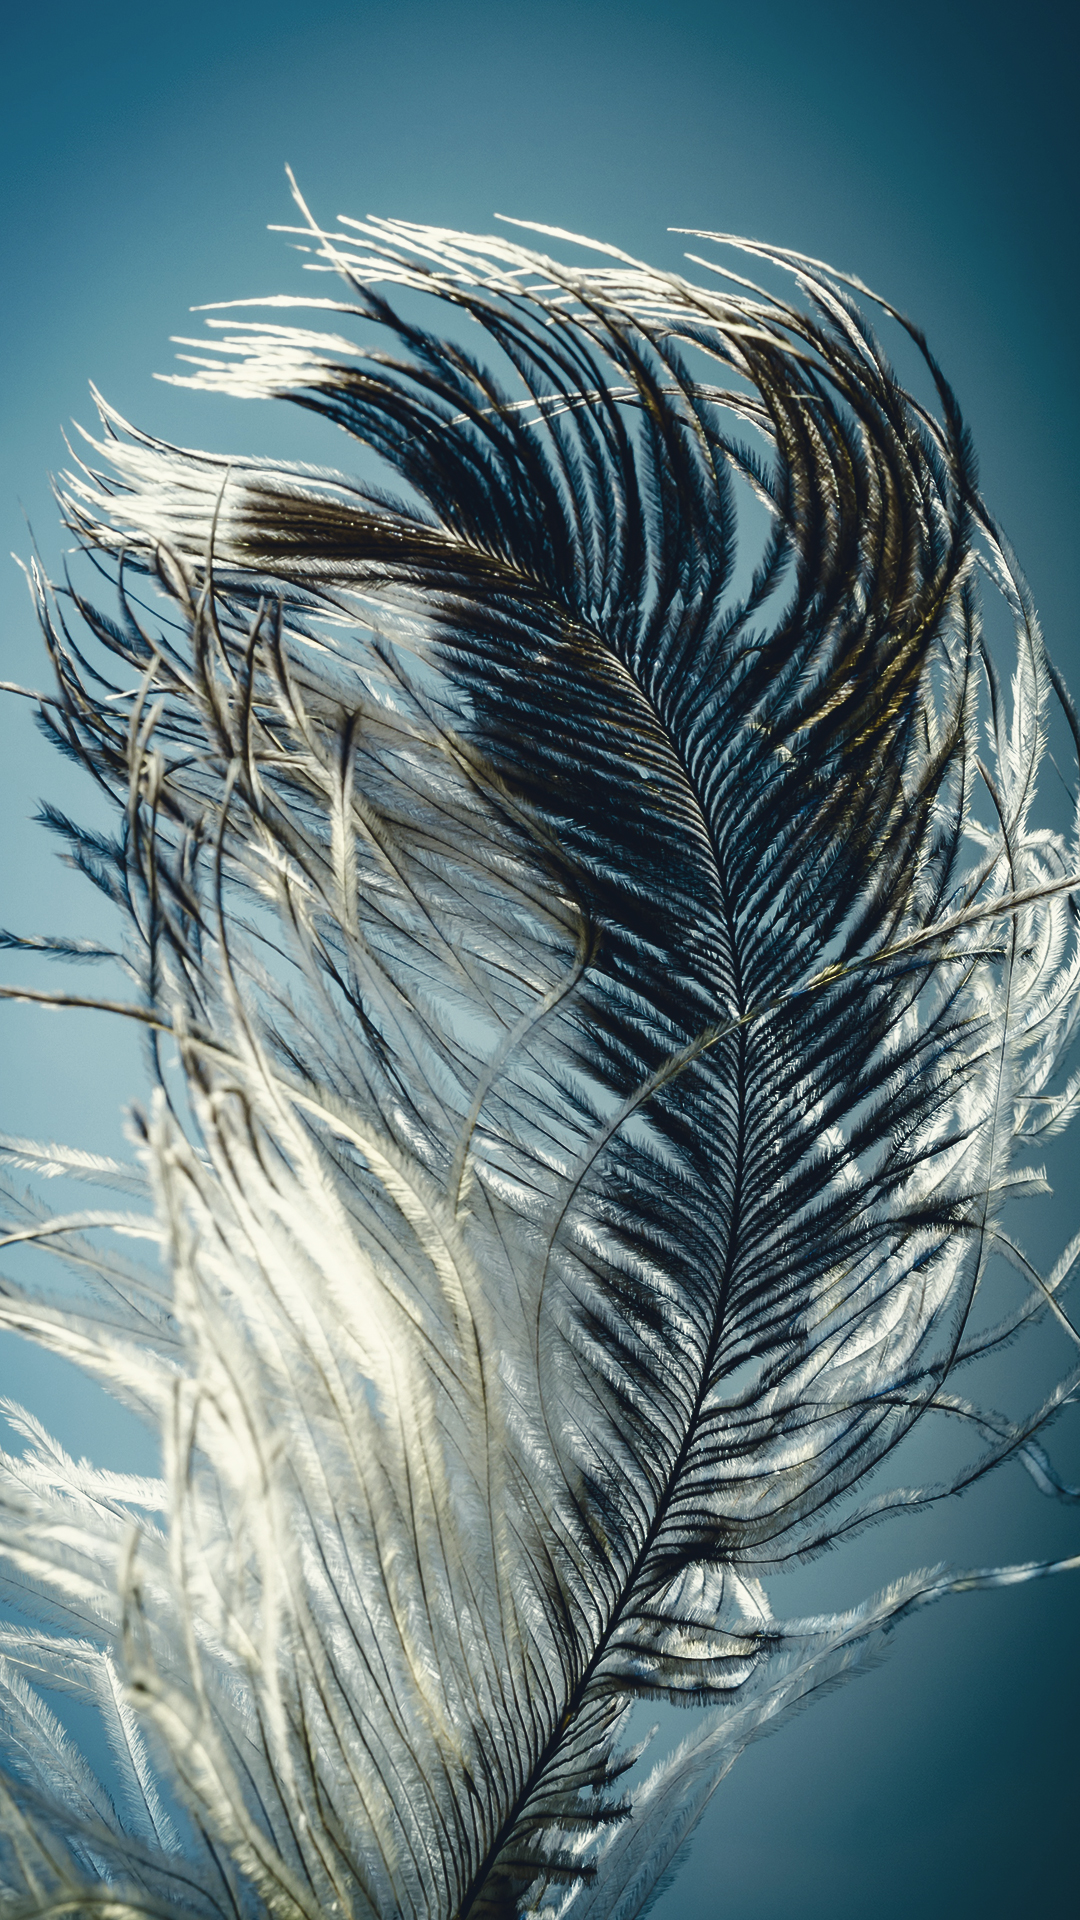 Best Wallpapers For Iphone 6 Hd Feather Light 1080 X 1920 Hd Phone Wallpaper